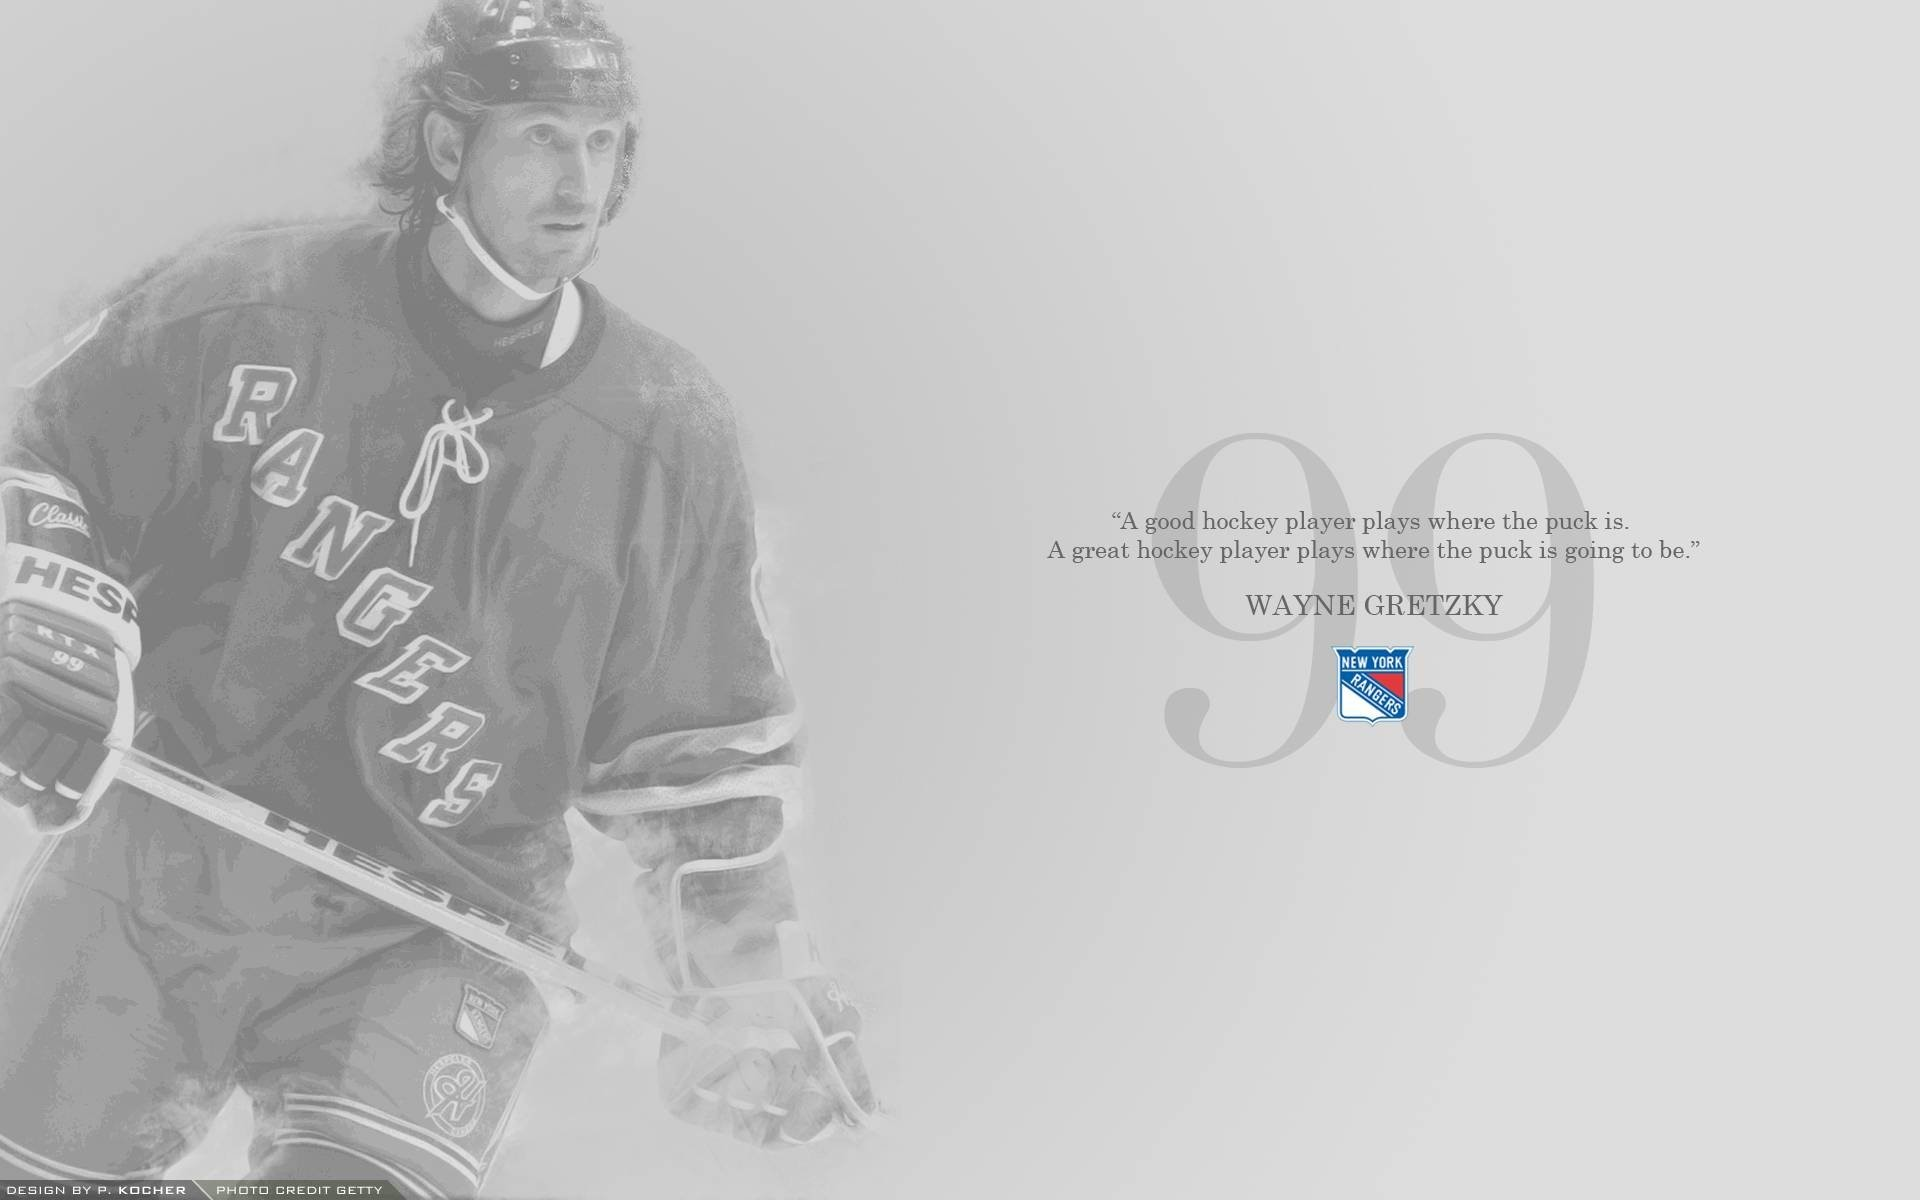 1920x1200 Wayne Gretzky during a hockey game wallpaper Sport wallpapers